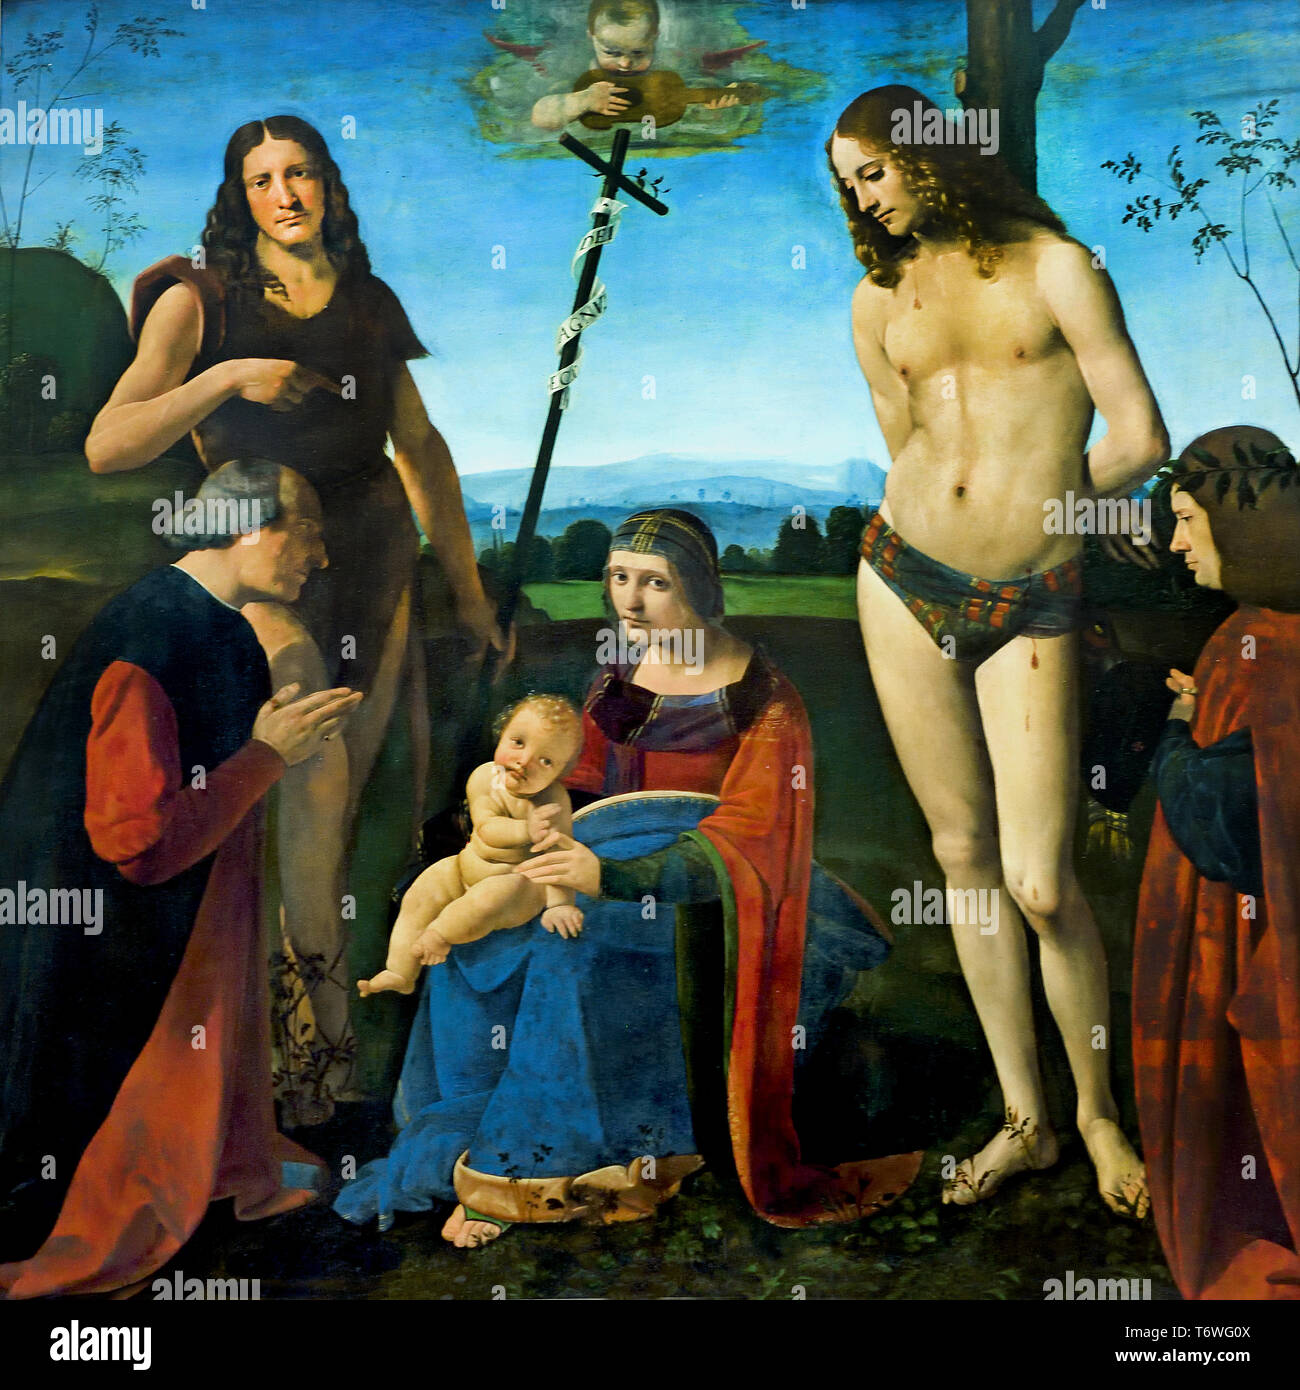 The Virgin and Child with St. John the Baptist and St. Sebastian and two donors, (Pala Casio,) by  Giovanni Antonio BOLTRAFFIO 1467 - 1516, Milan, Italy, Italian. - Stock Image